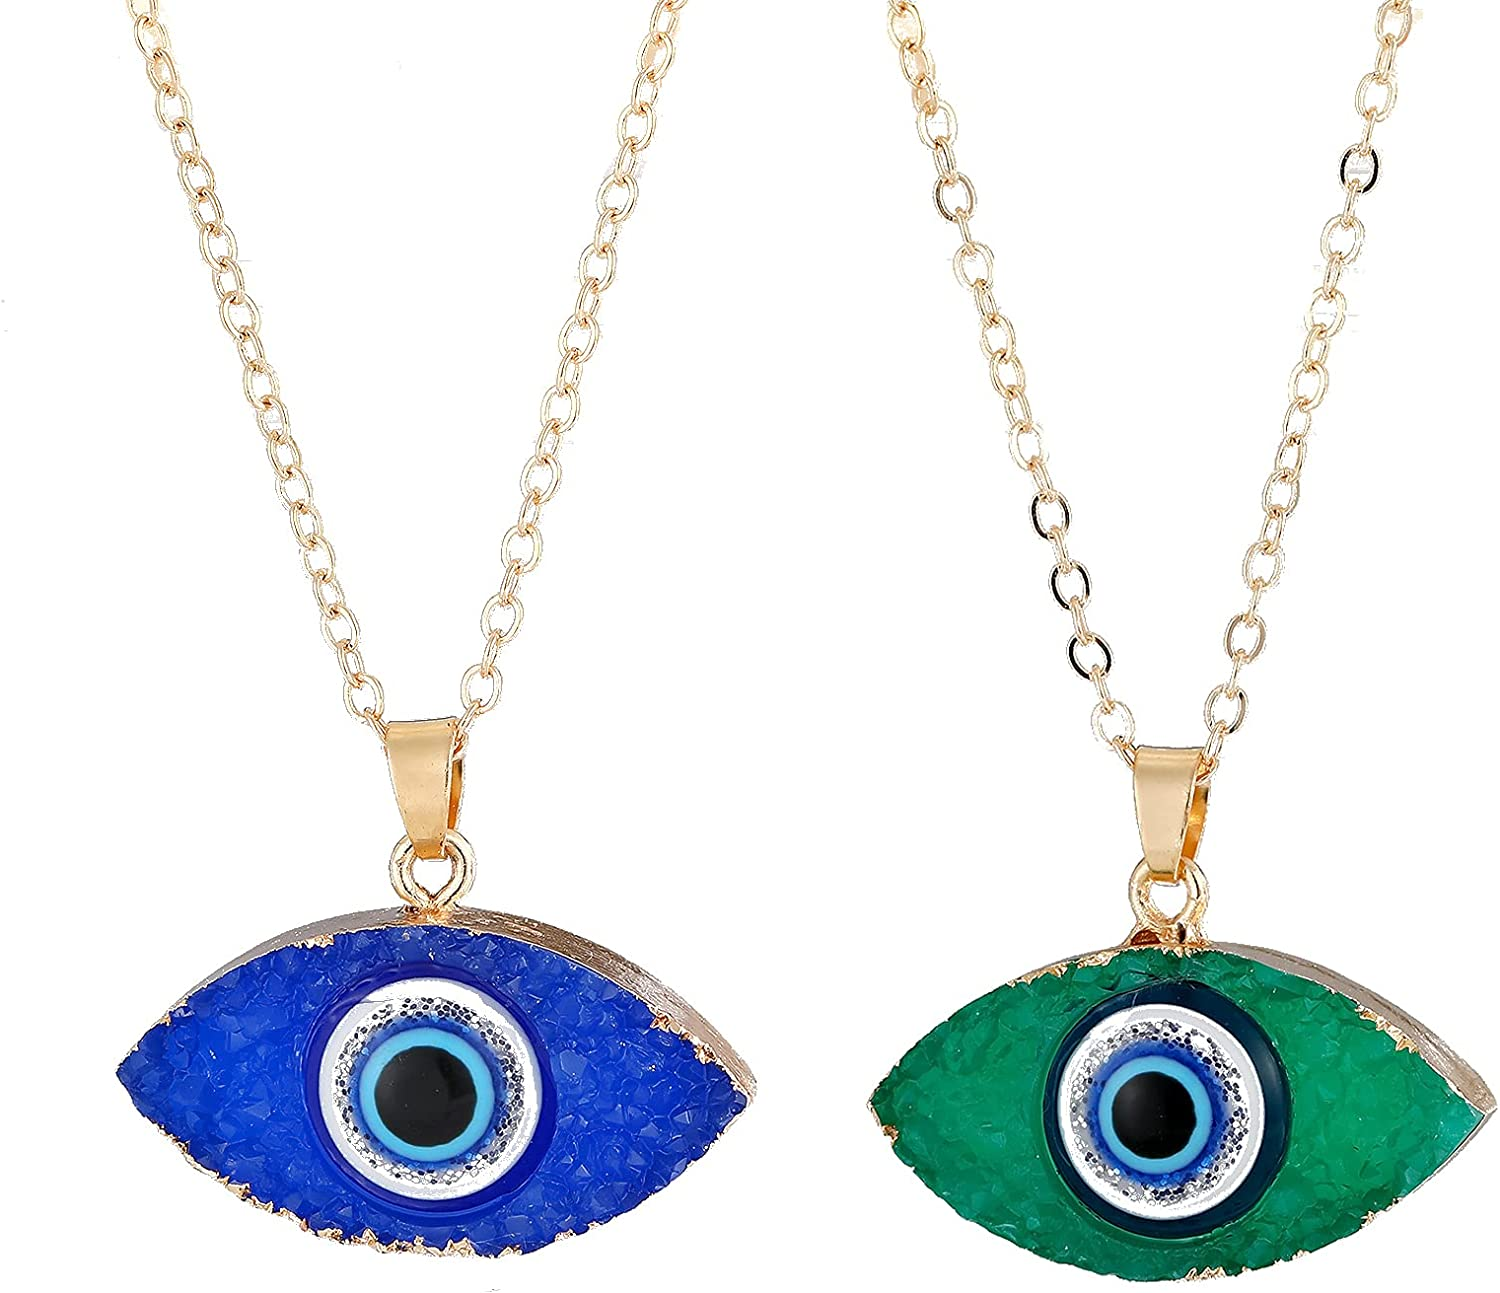 COLORFUL BLING 2 Pieces Gold Plated Imitated Druzy Evil Eye Pendant Necklace Faith Protection Lucky Turkish Amulet Jewelry for Women Girls